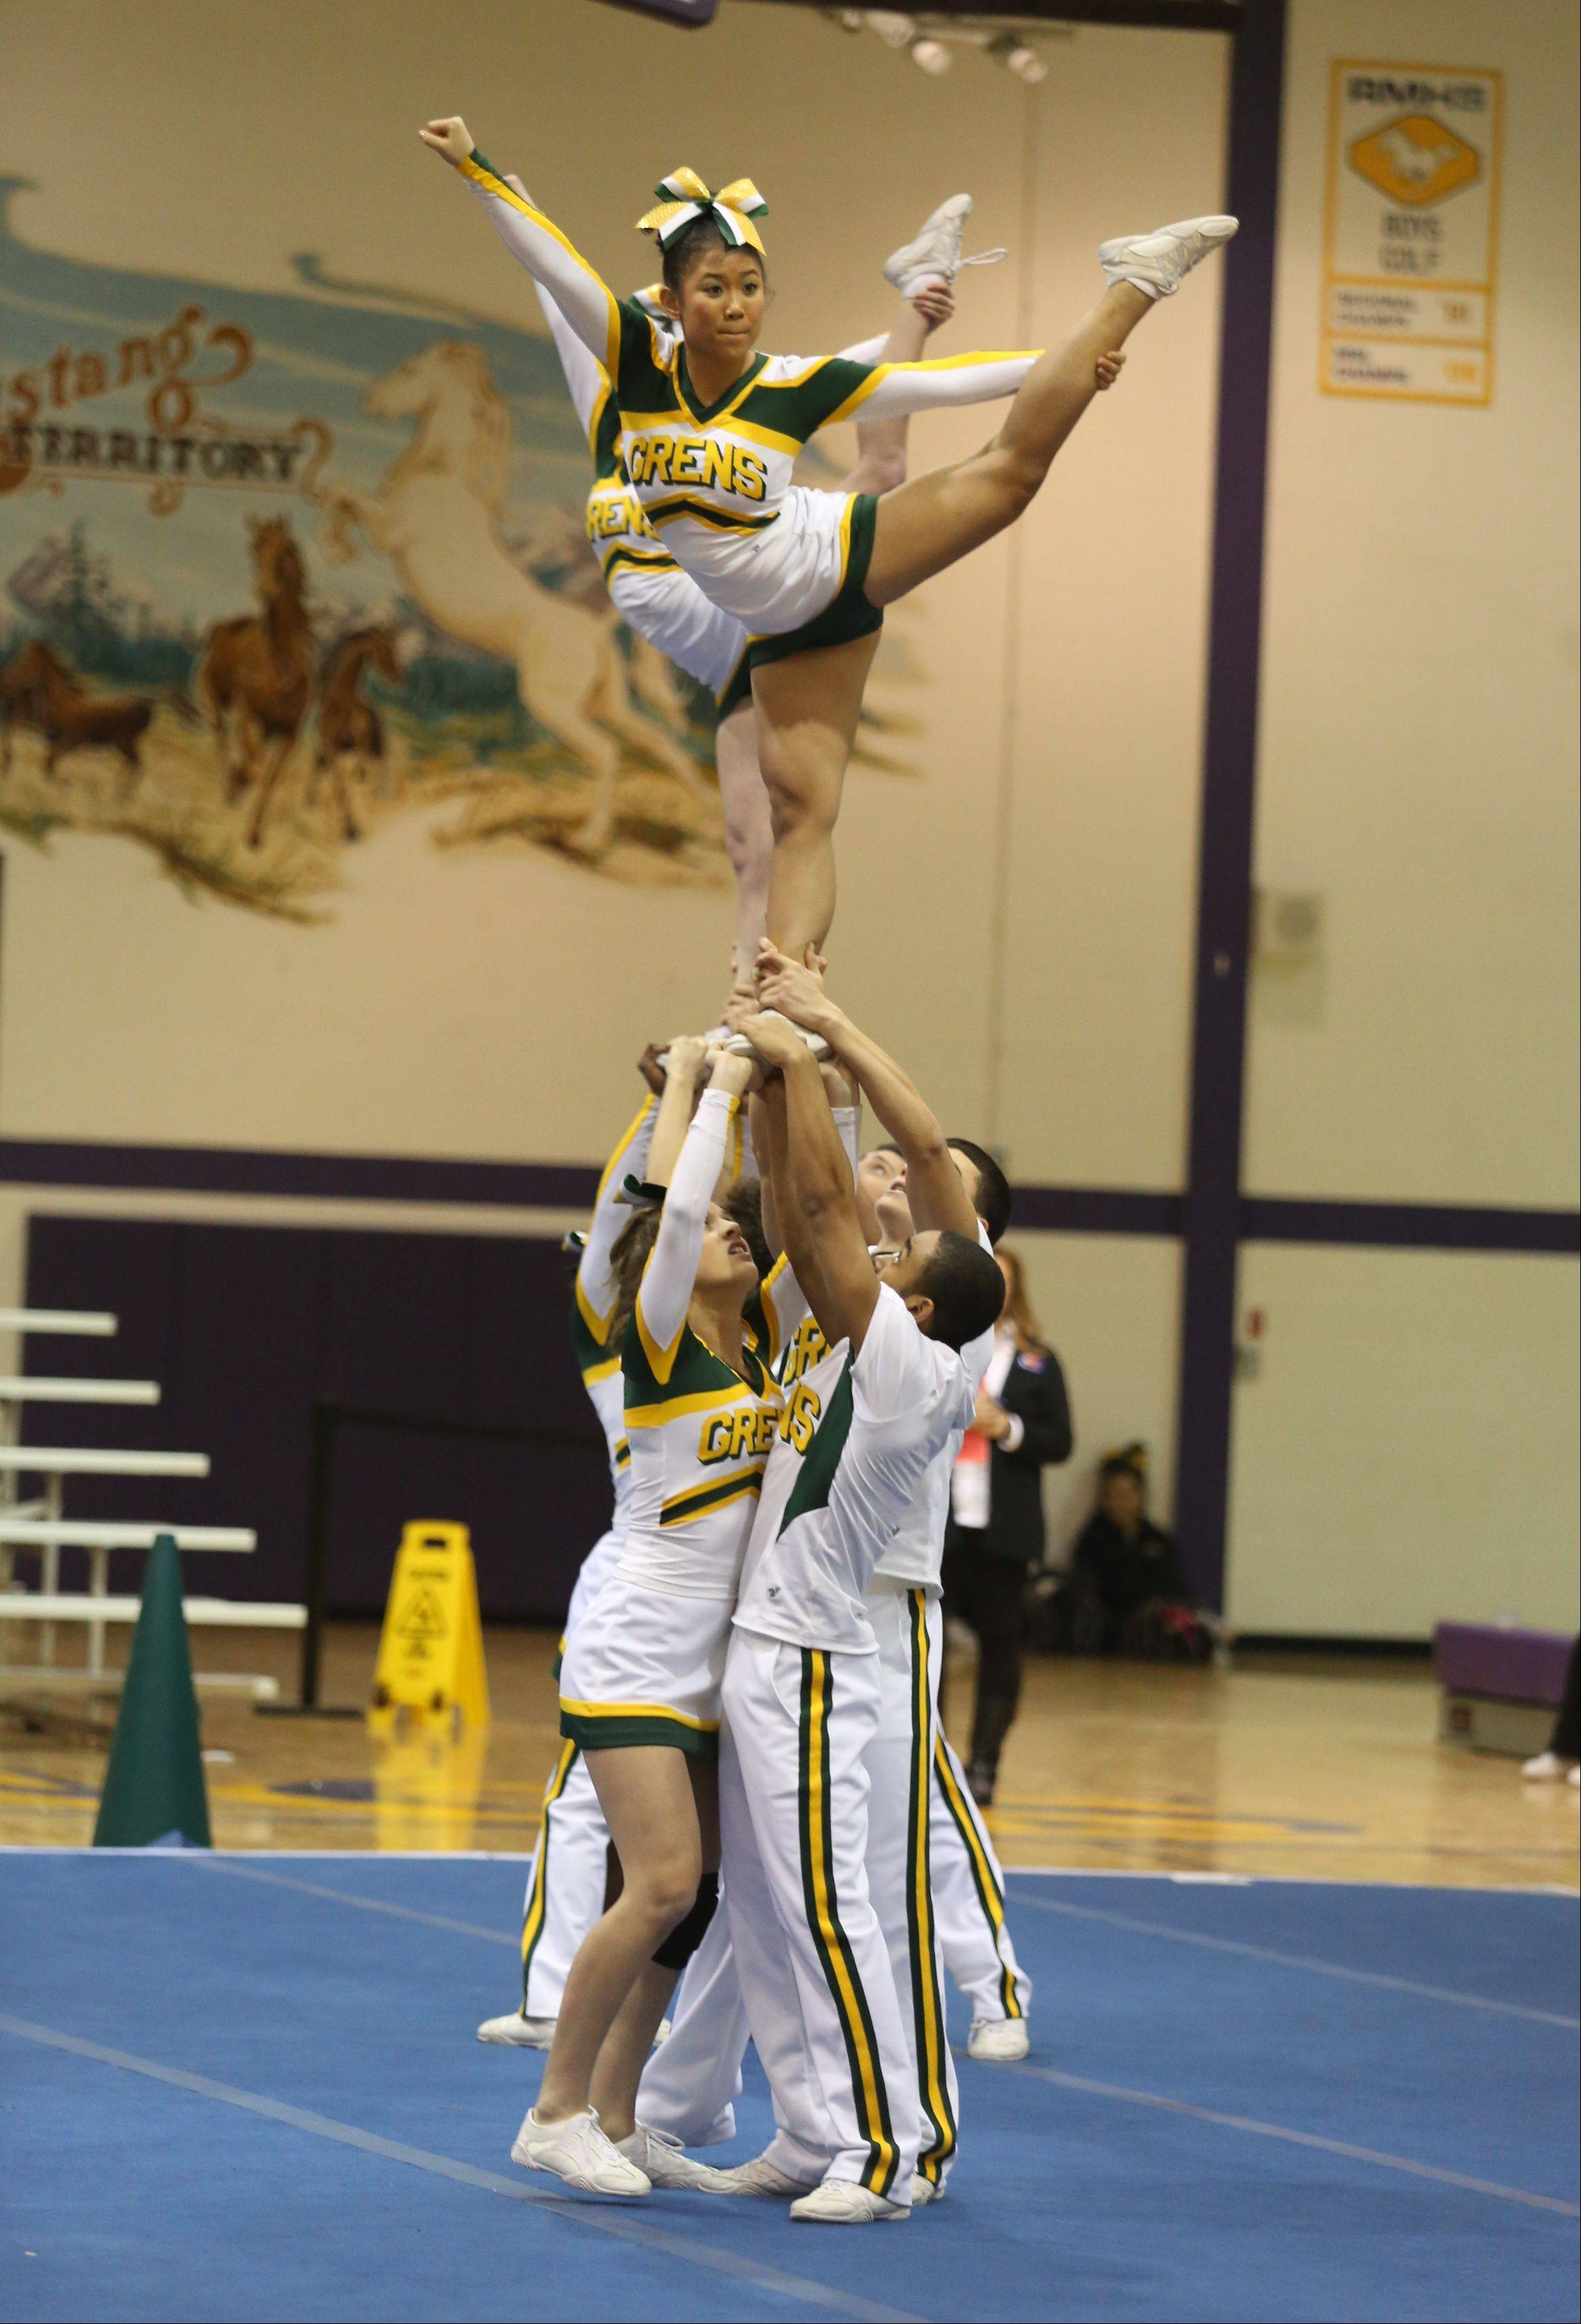 Elk Grove High School competes in the Coed Team category during the IHSA Cheerleading Sectional Sunday hosted by Rolling Meadows High School.